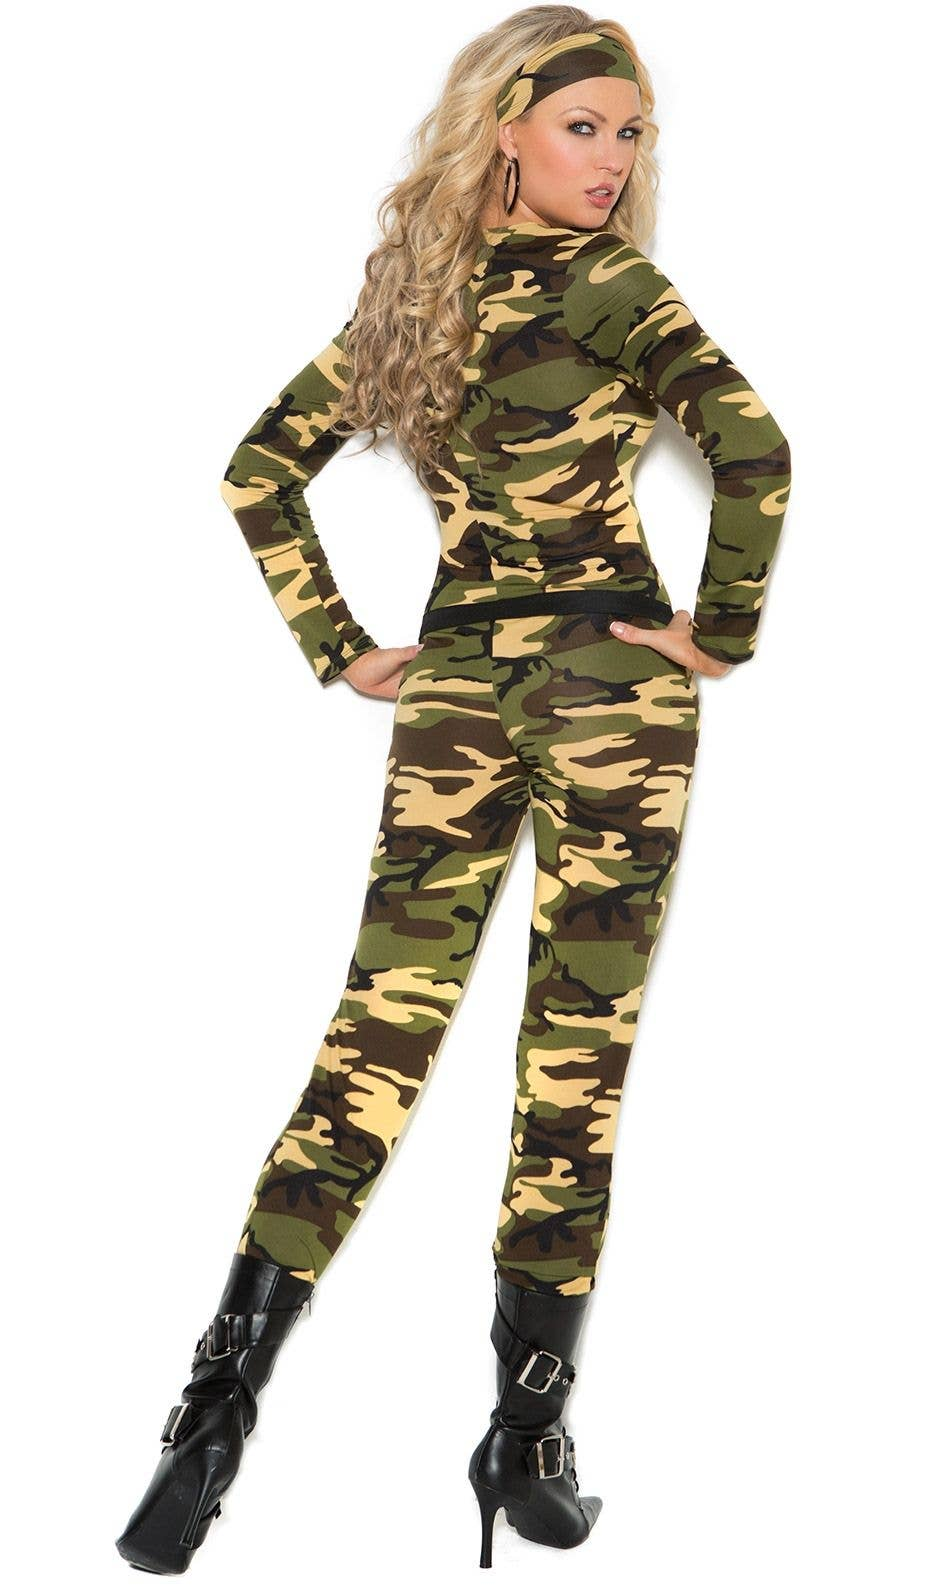 dab6423af27 Army Combat Warrior Sexy Women's Costume